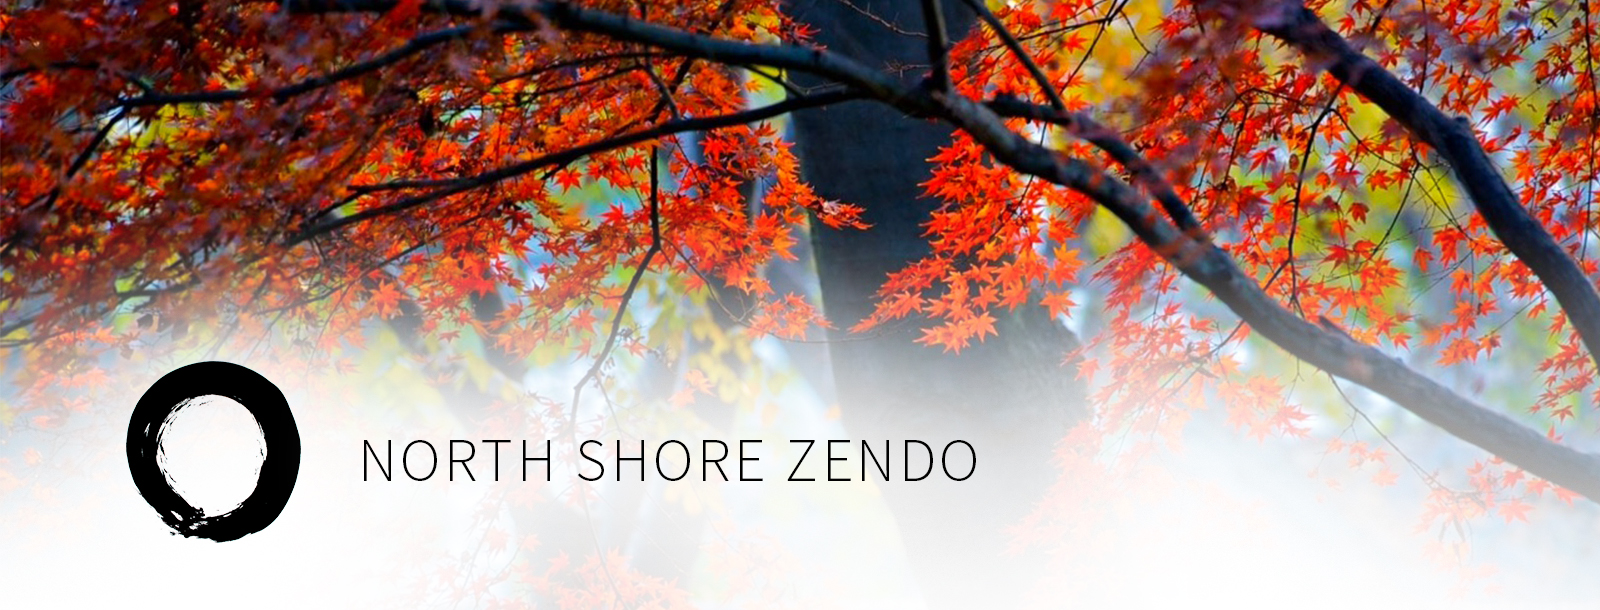 North Shore Zendo